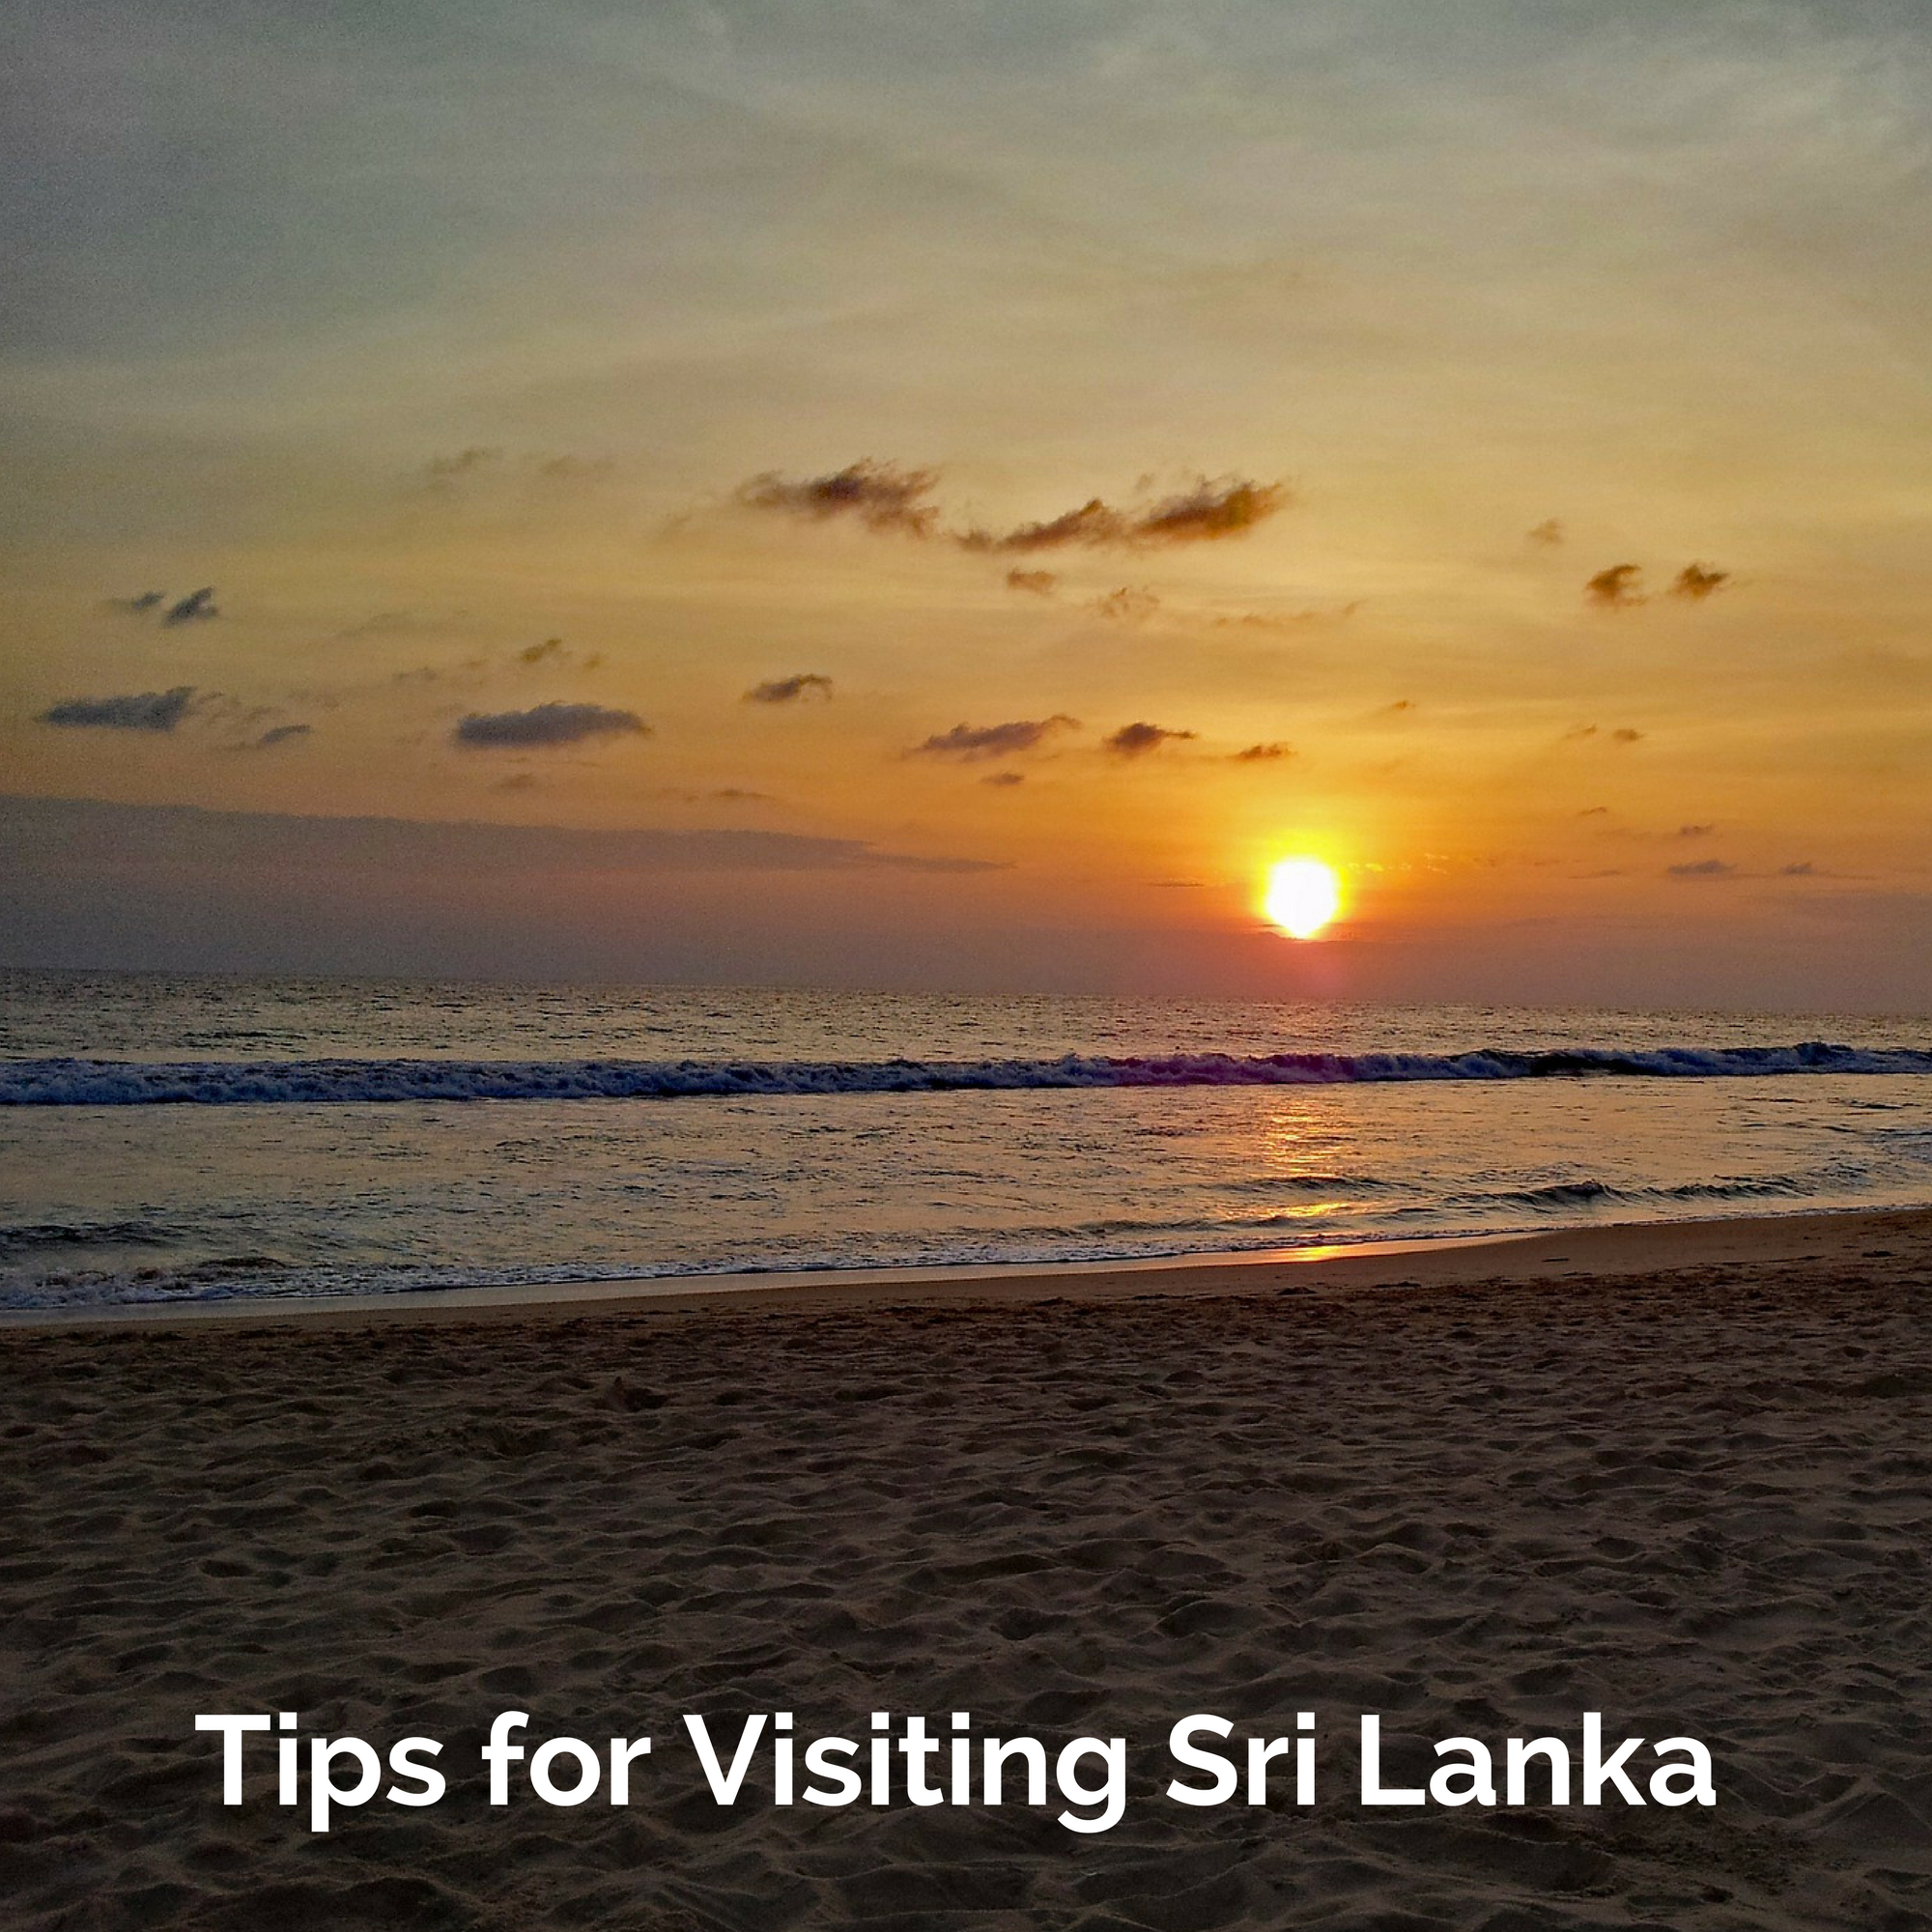 Tips for Visiting Sri Lanka